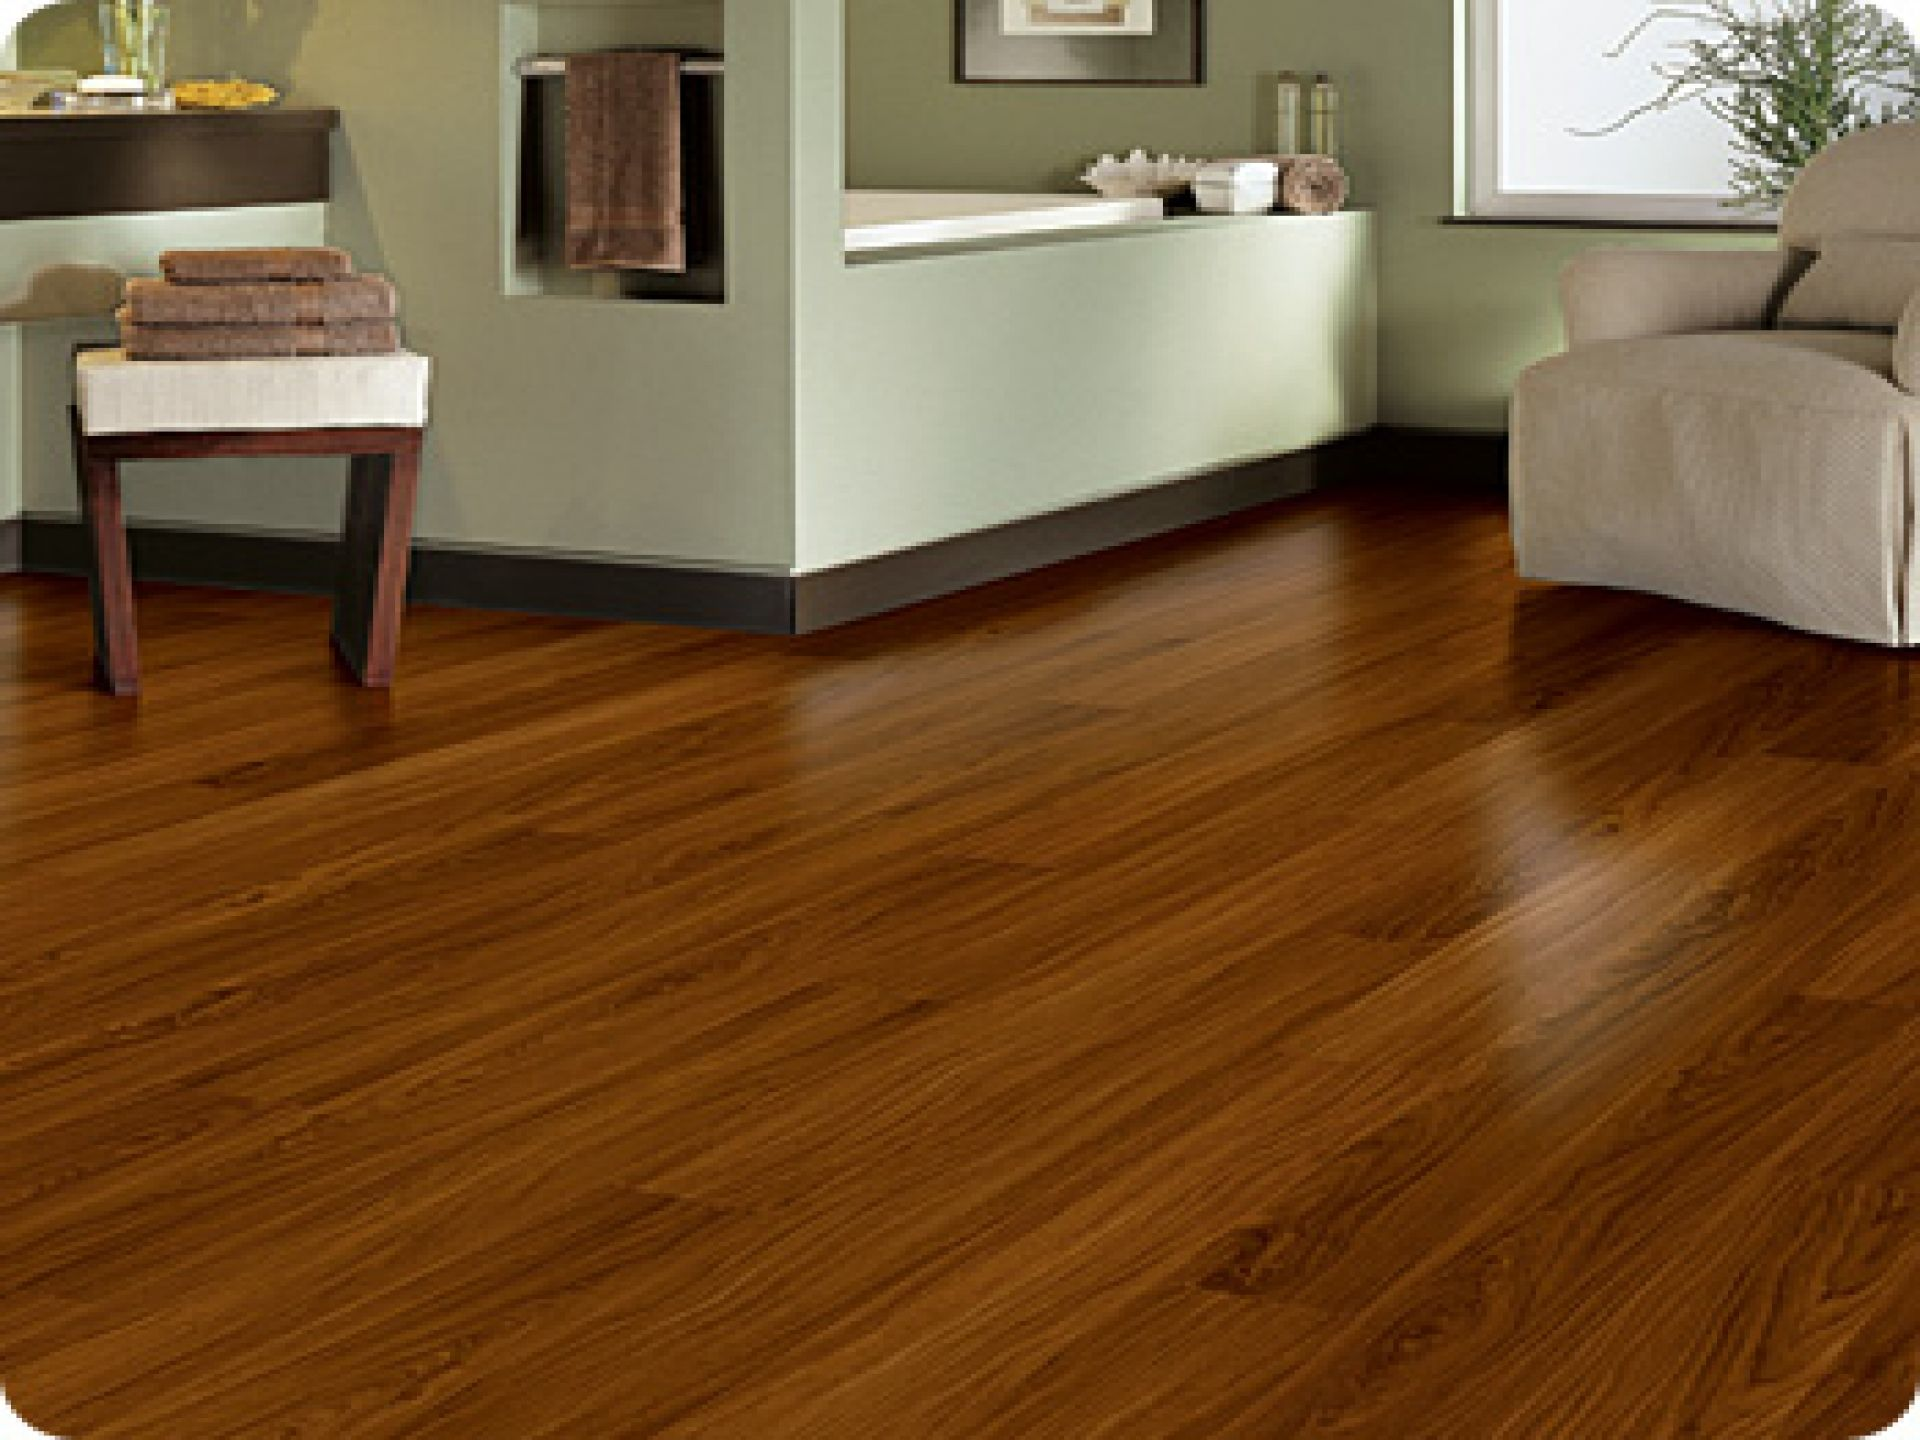 73 best vinyl flooring images on pinterest vinyl tiles floors vinyl plank flooring the home would look great with this dailygadgetfo Image collections